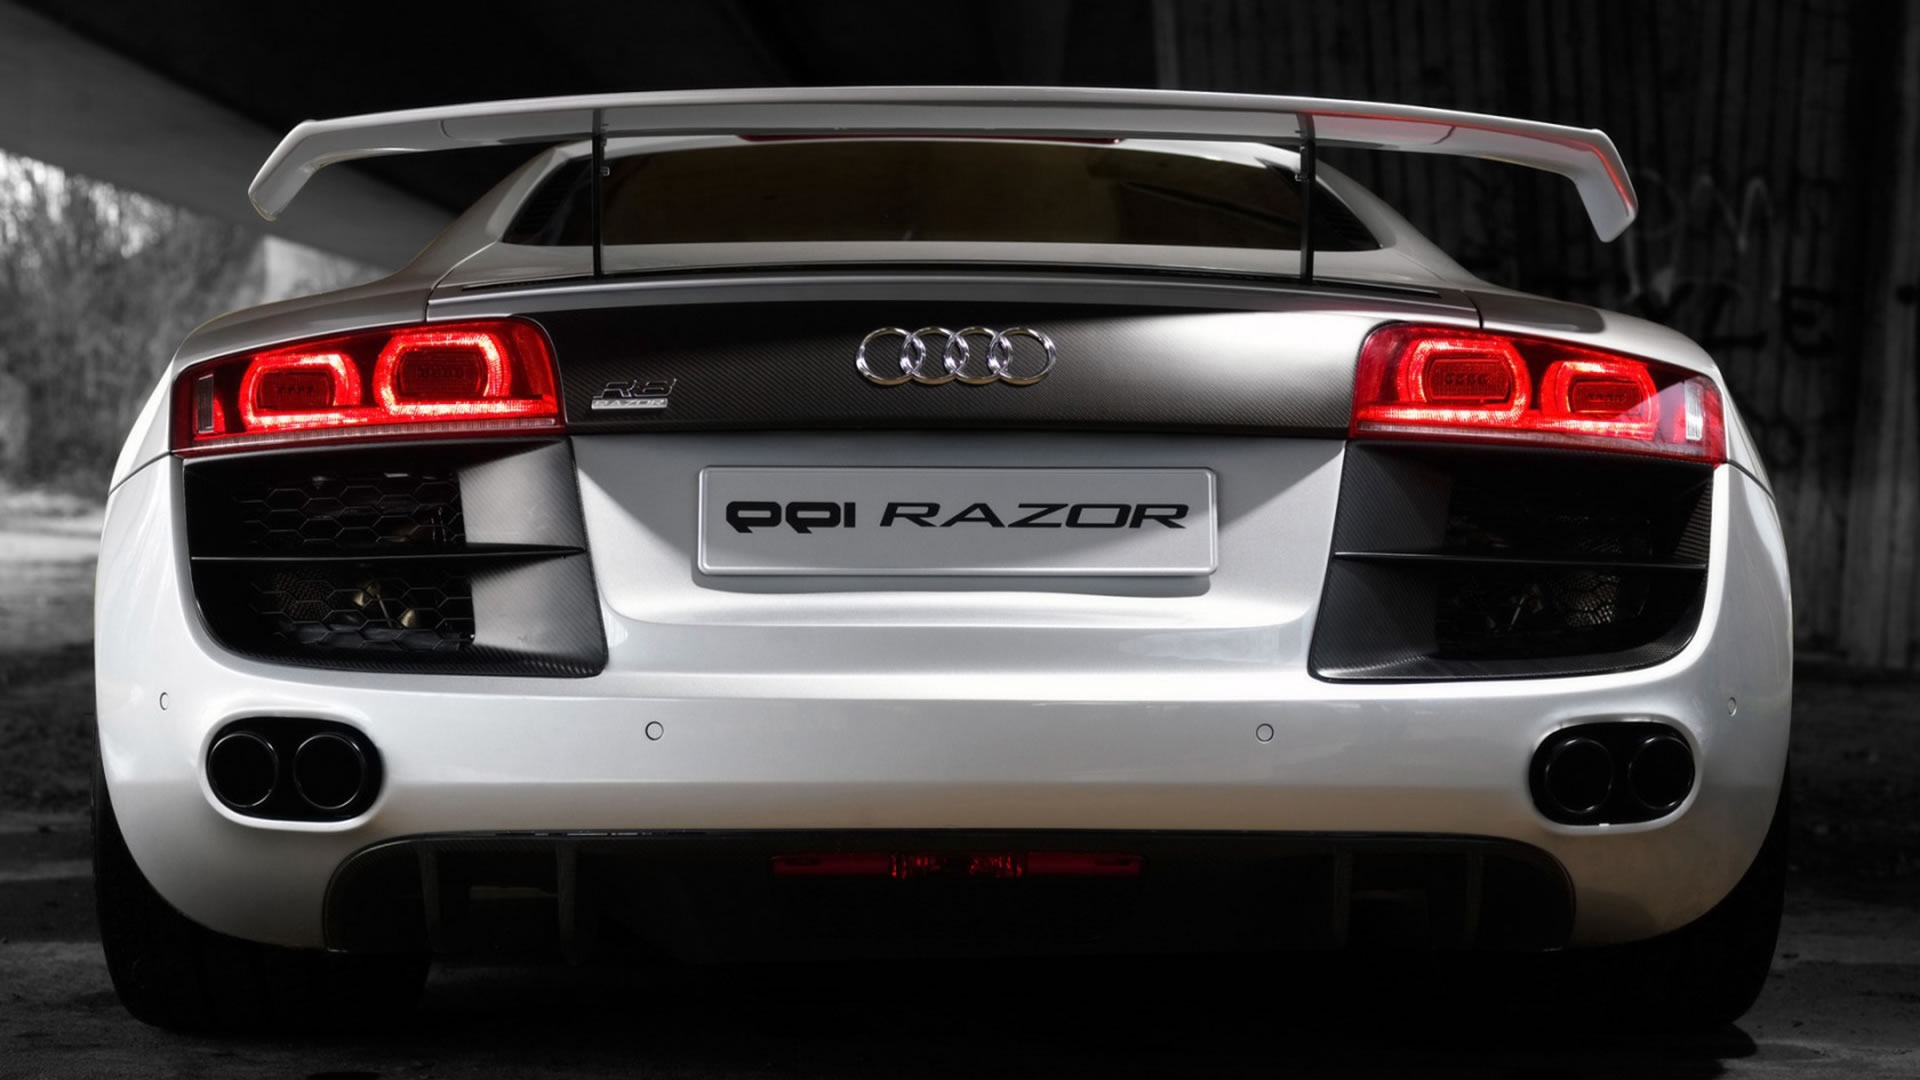 Audi R8 Luxury Car White Audi R8 Wallpaper Hd 1080p 1920x1080 Download Hd Wallpaper Wallpapertip